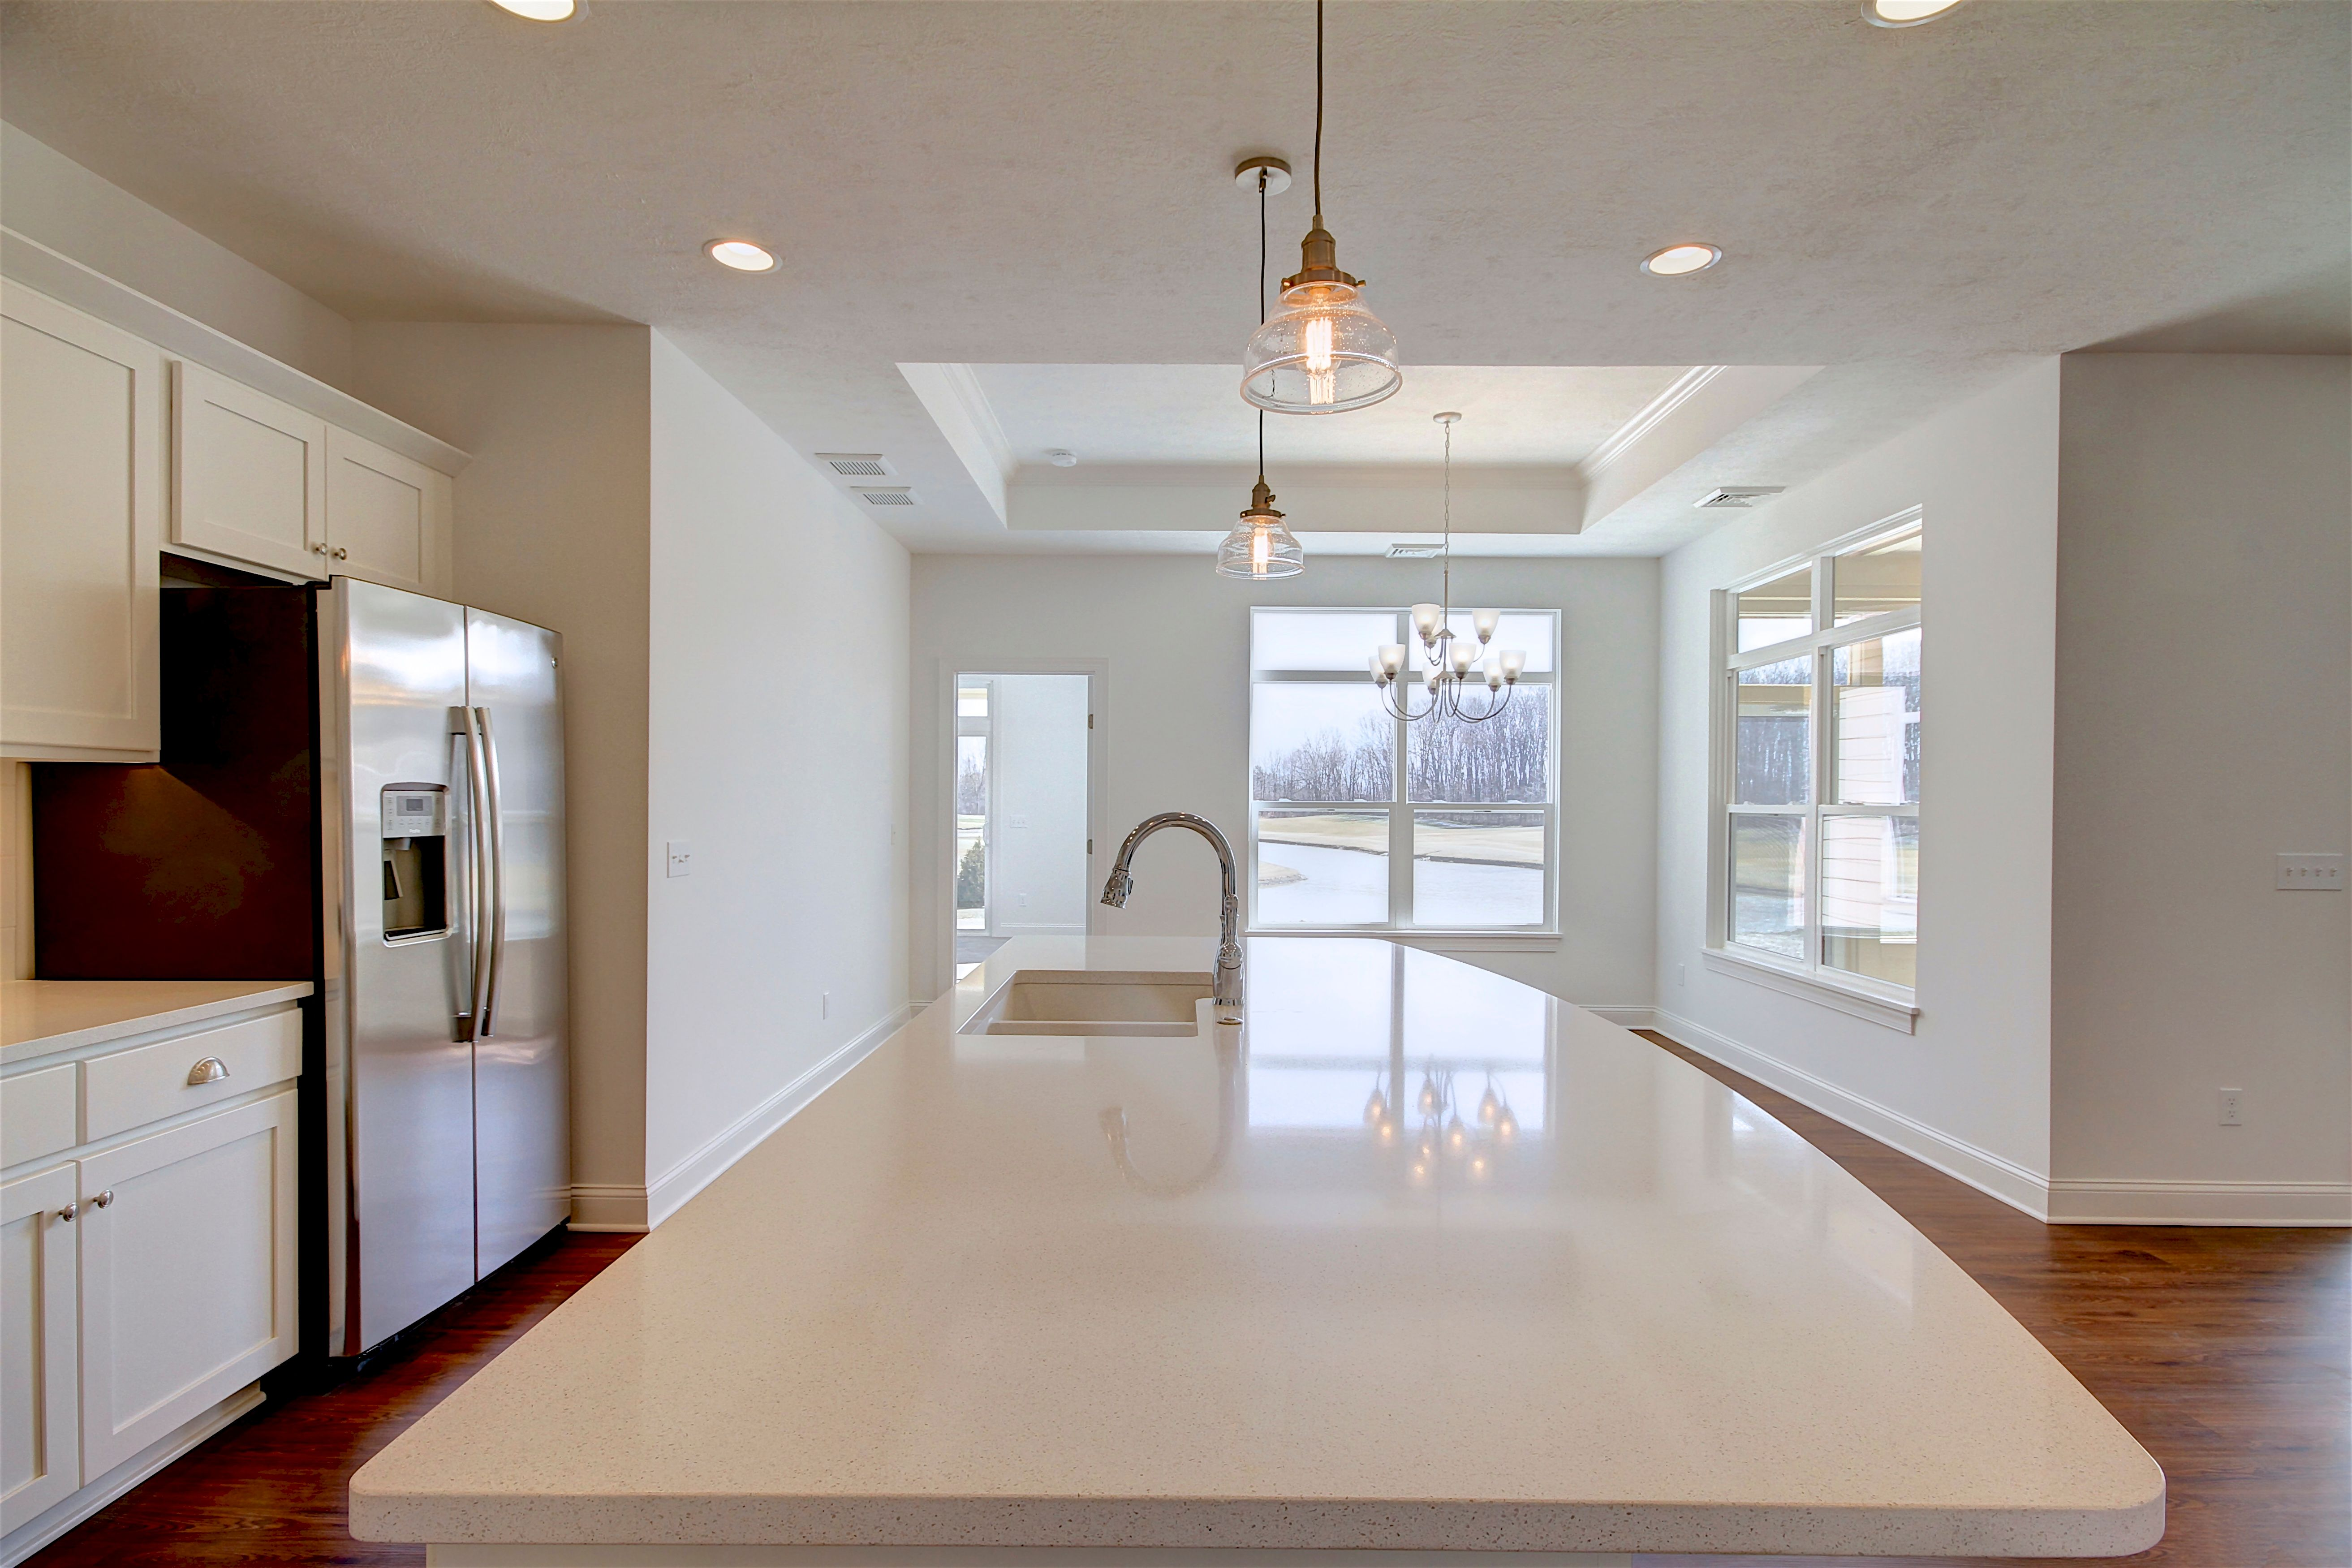 Kitchen featured in the Salerno By Epcon Homes and Communities in Sandusky, OH